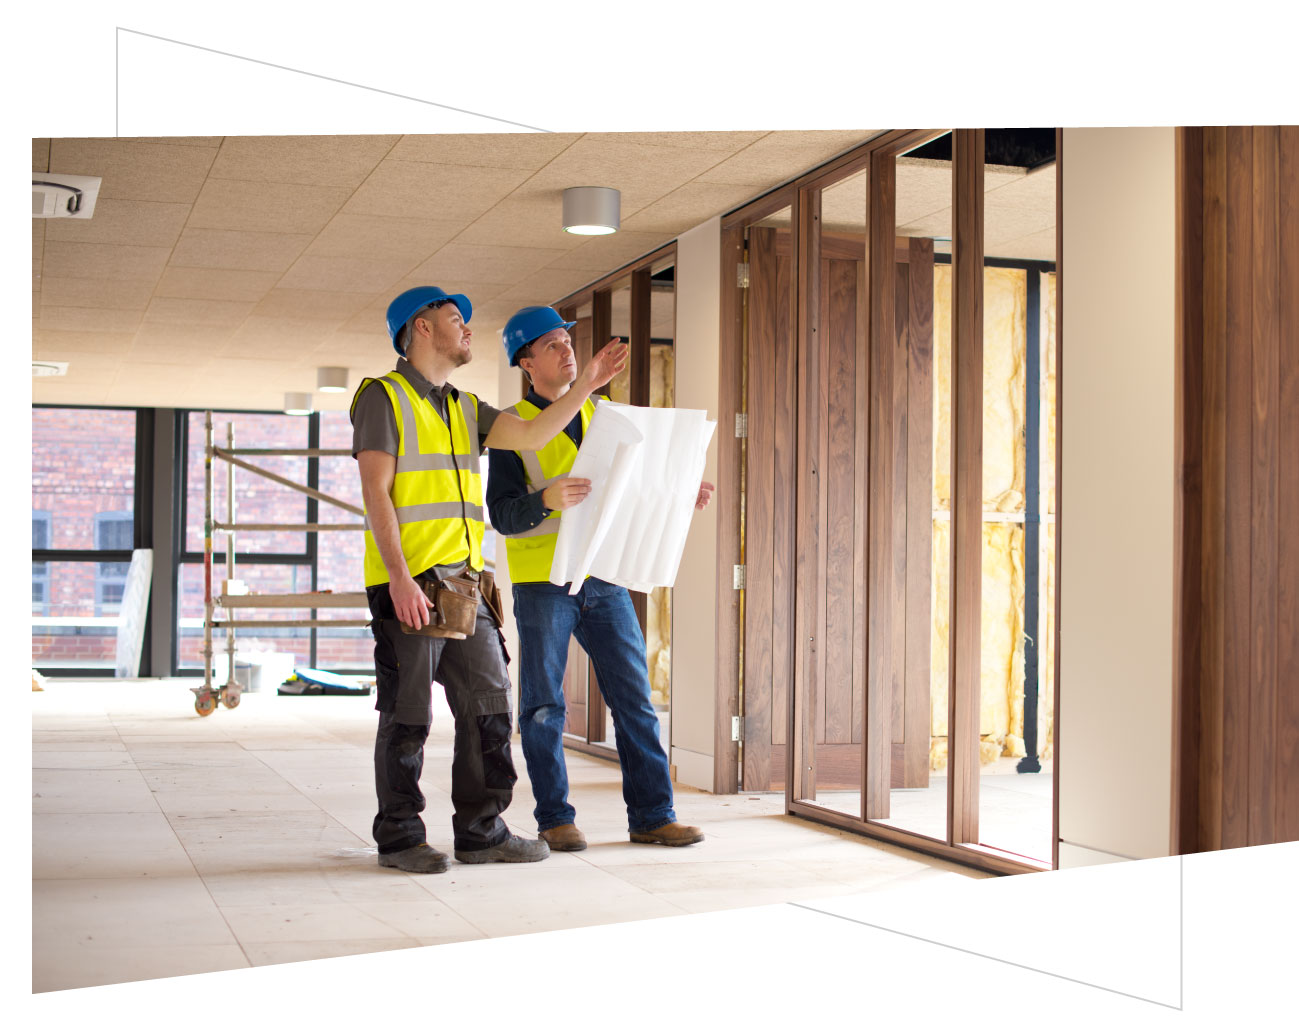 two construction workers looking at blueprint in an under construction office